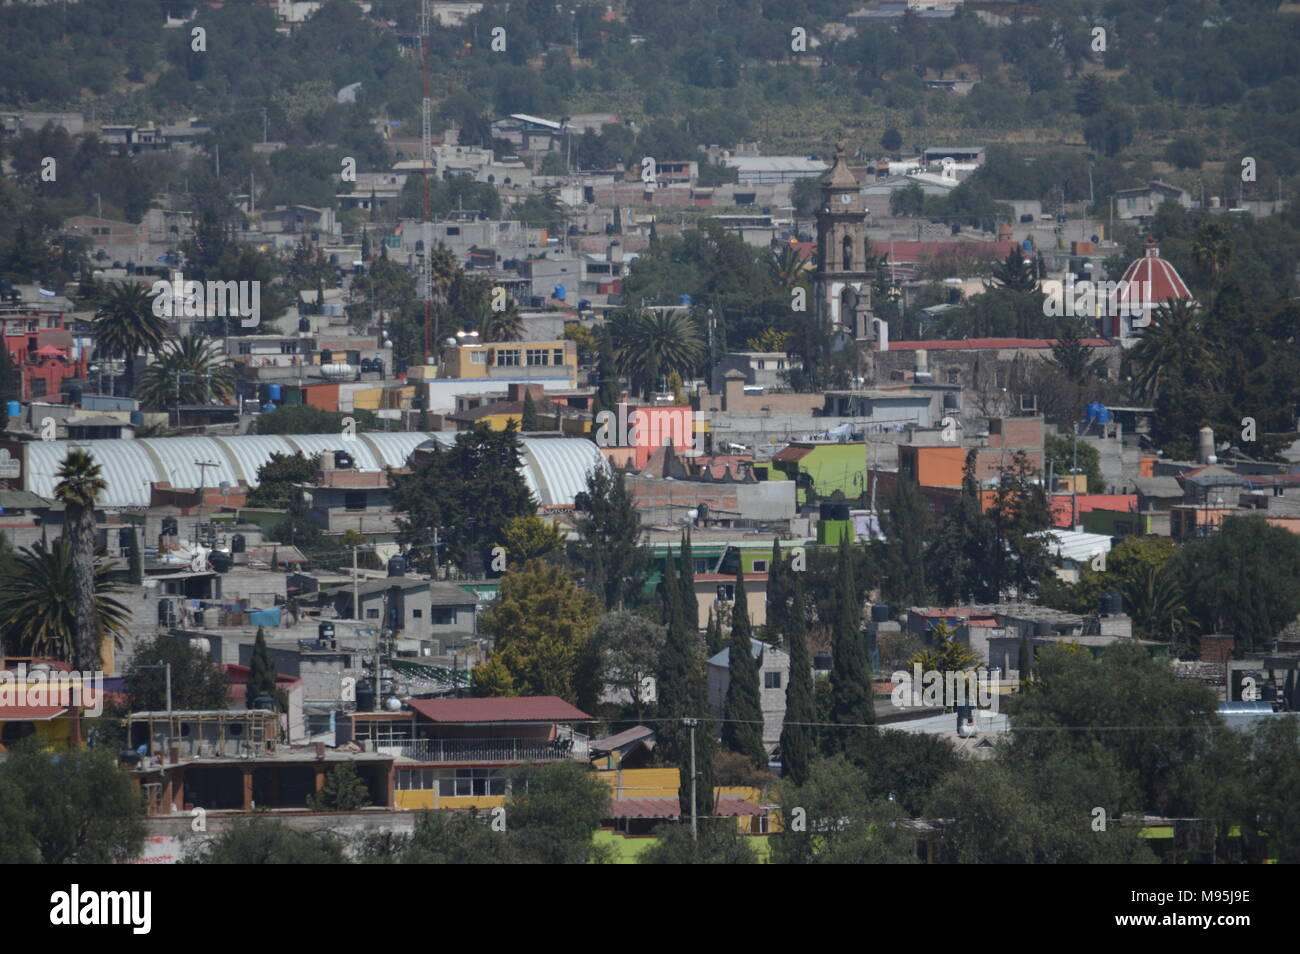 The view of the town San Martin de las Piramides from the Pyramid of the Sun at Teotihuacan, Mexico Stock Photo